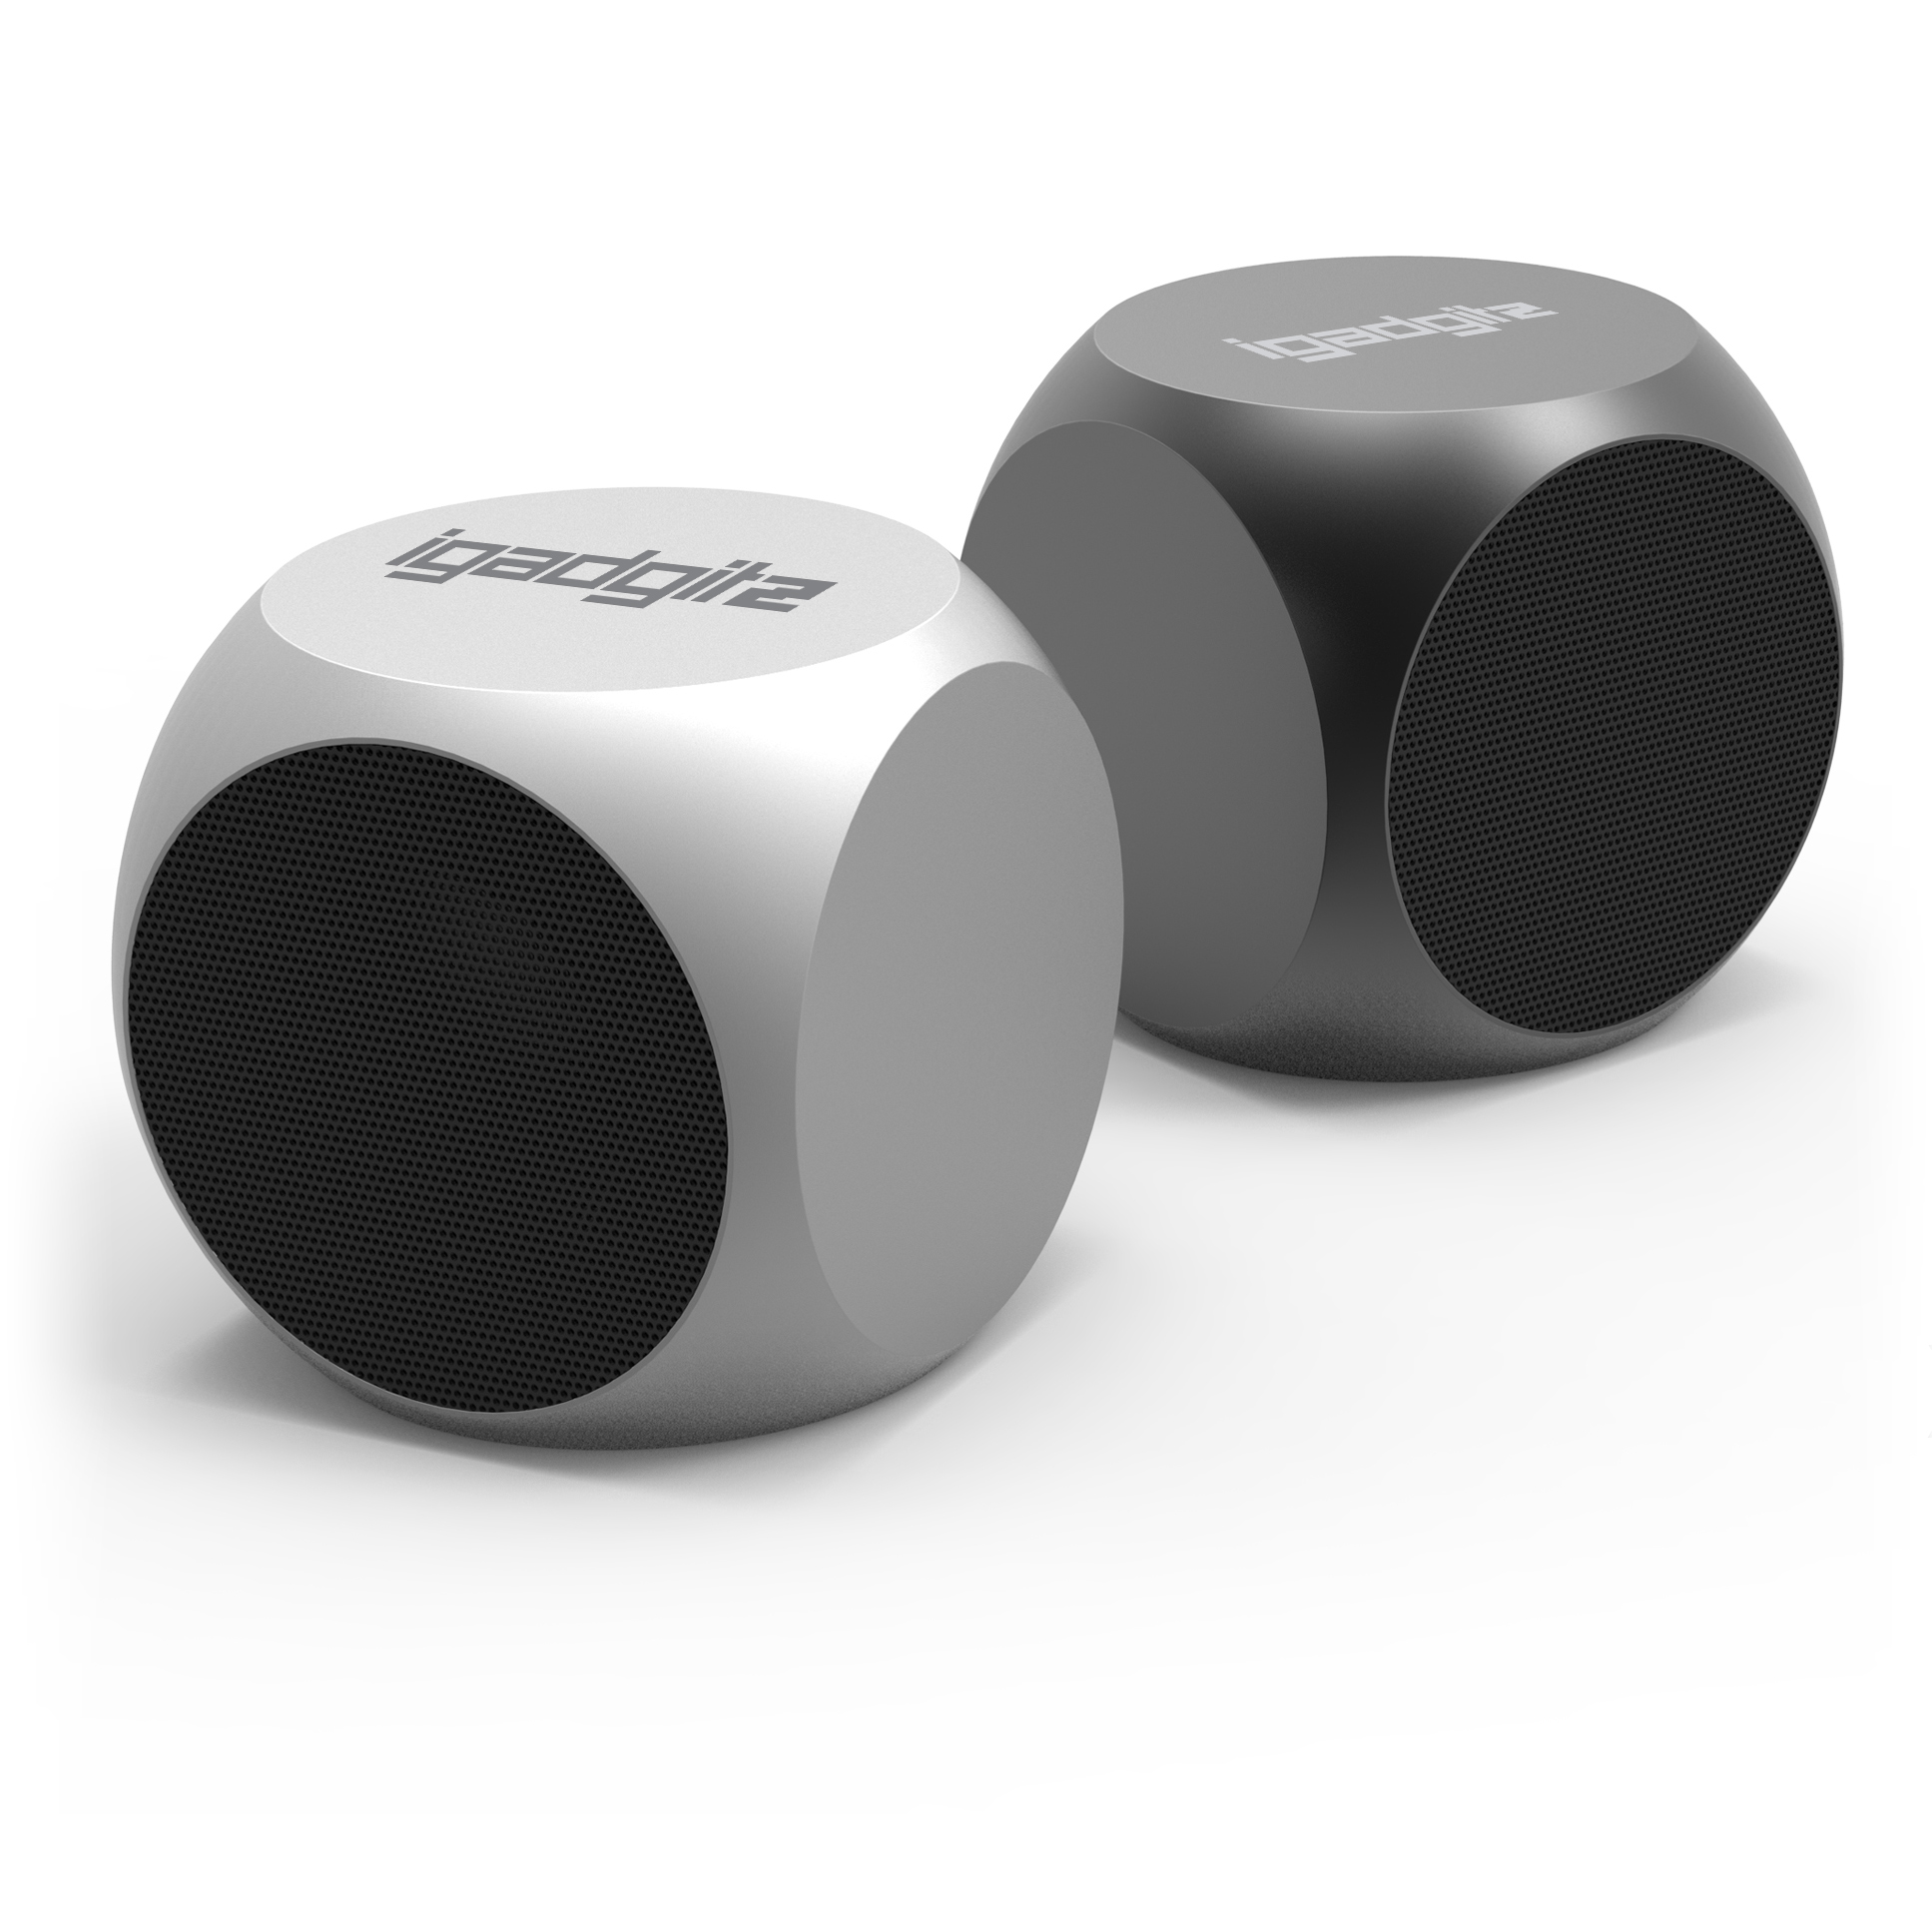 iGadgitz Al Series: 'The Cube' Portable Wireless Stereo Bluetooth 3.0 Aluminium Travel Speaker (3W Power with Rich Bass)